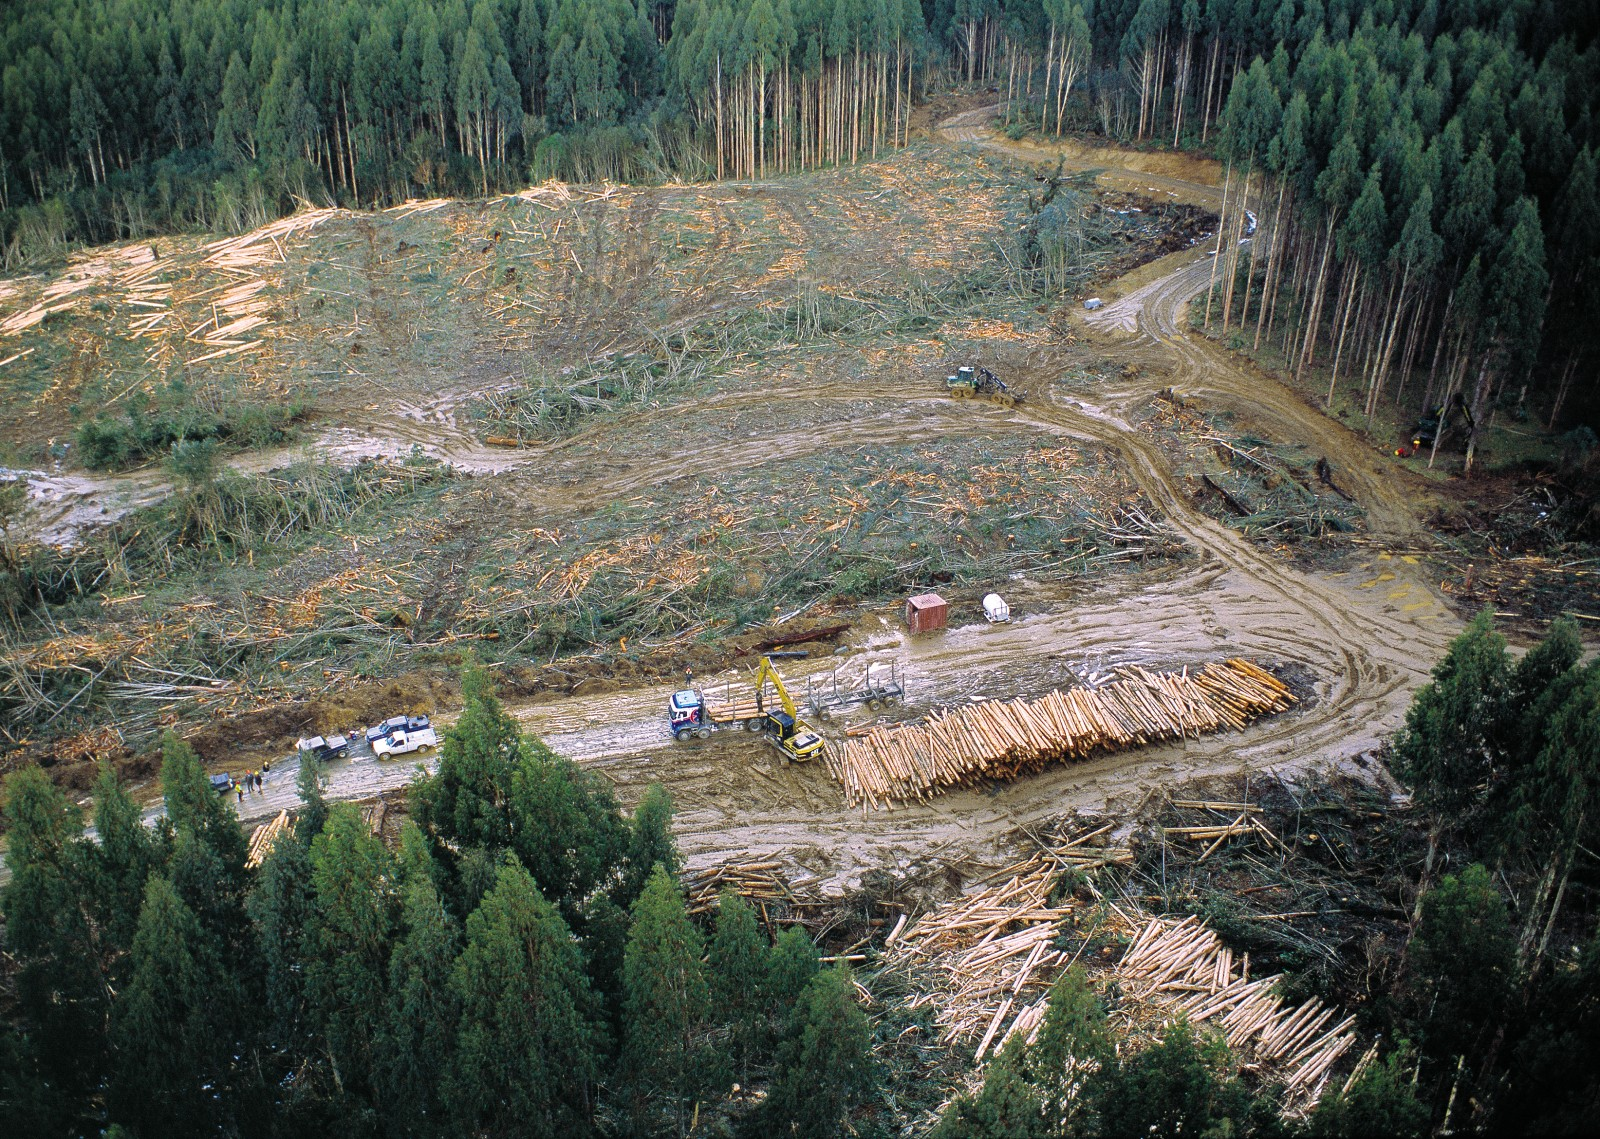 At Happy Valley, in western Southland, 22-year-old alpine ash (E. delegatensis) is mechanically harvested for chipping. The harvester grabs a tree, severs it, rotates it parallel to the ground, then grinds its way along the trunk, removing bark and small branches before cutting it into lengths.